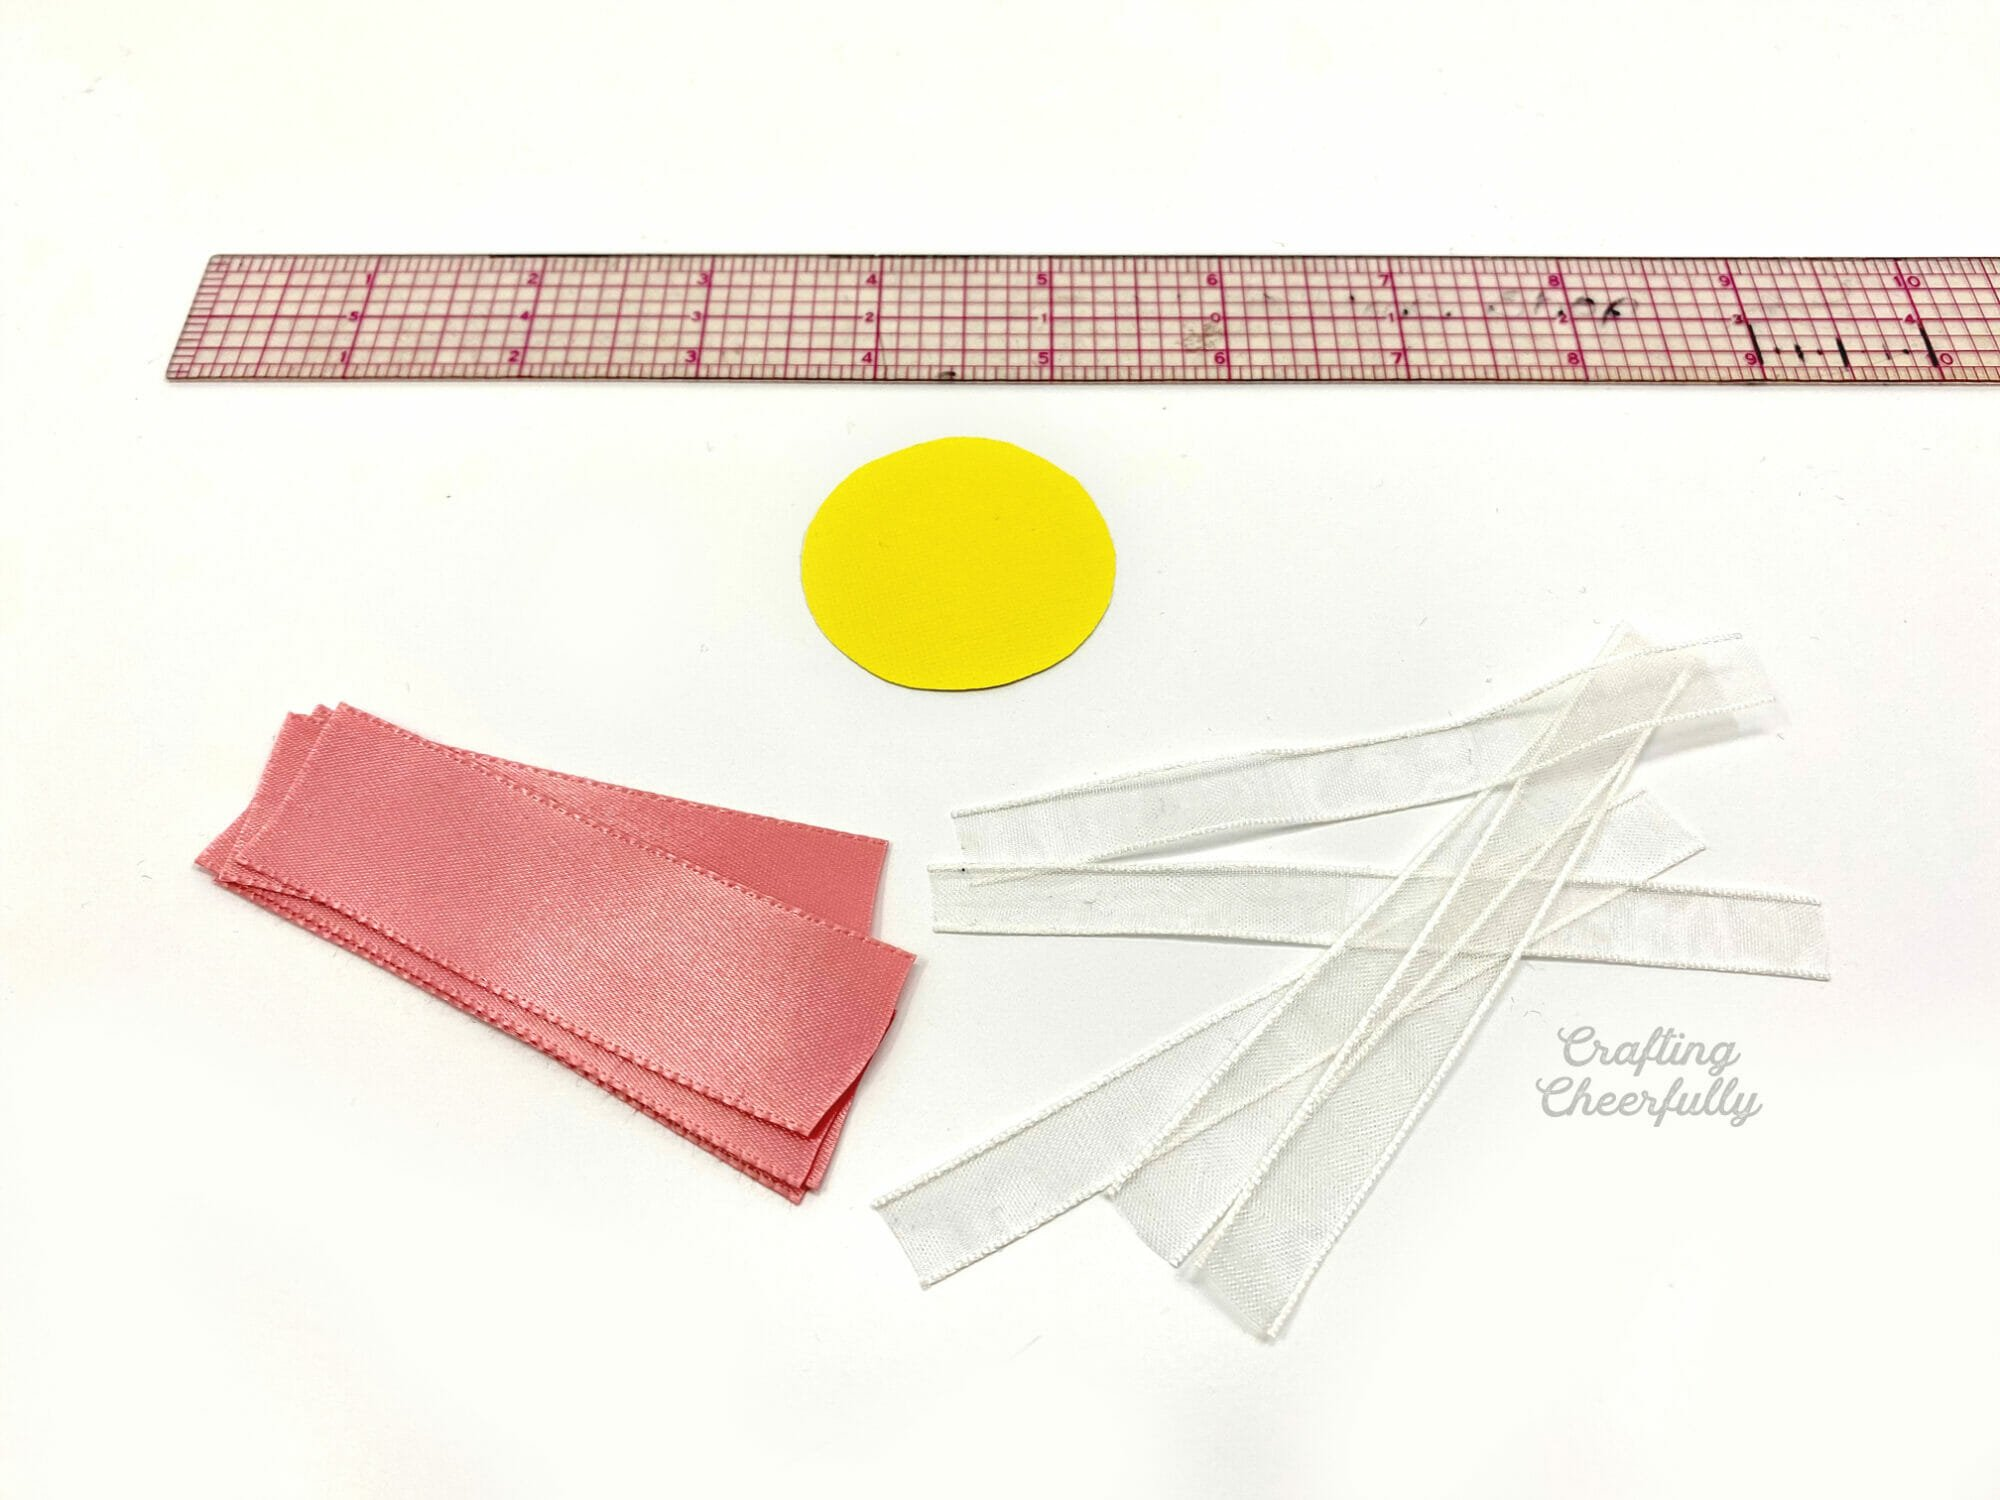 Ruler, ribbon and a paper circle lay on a table.